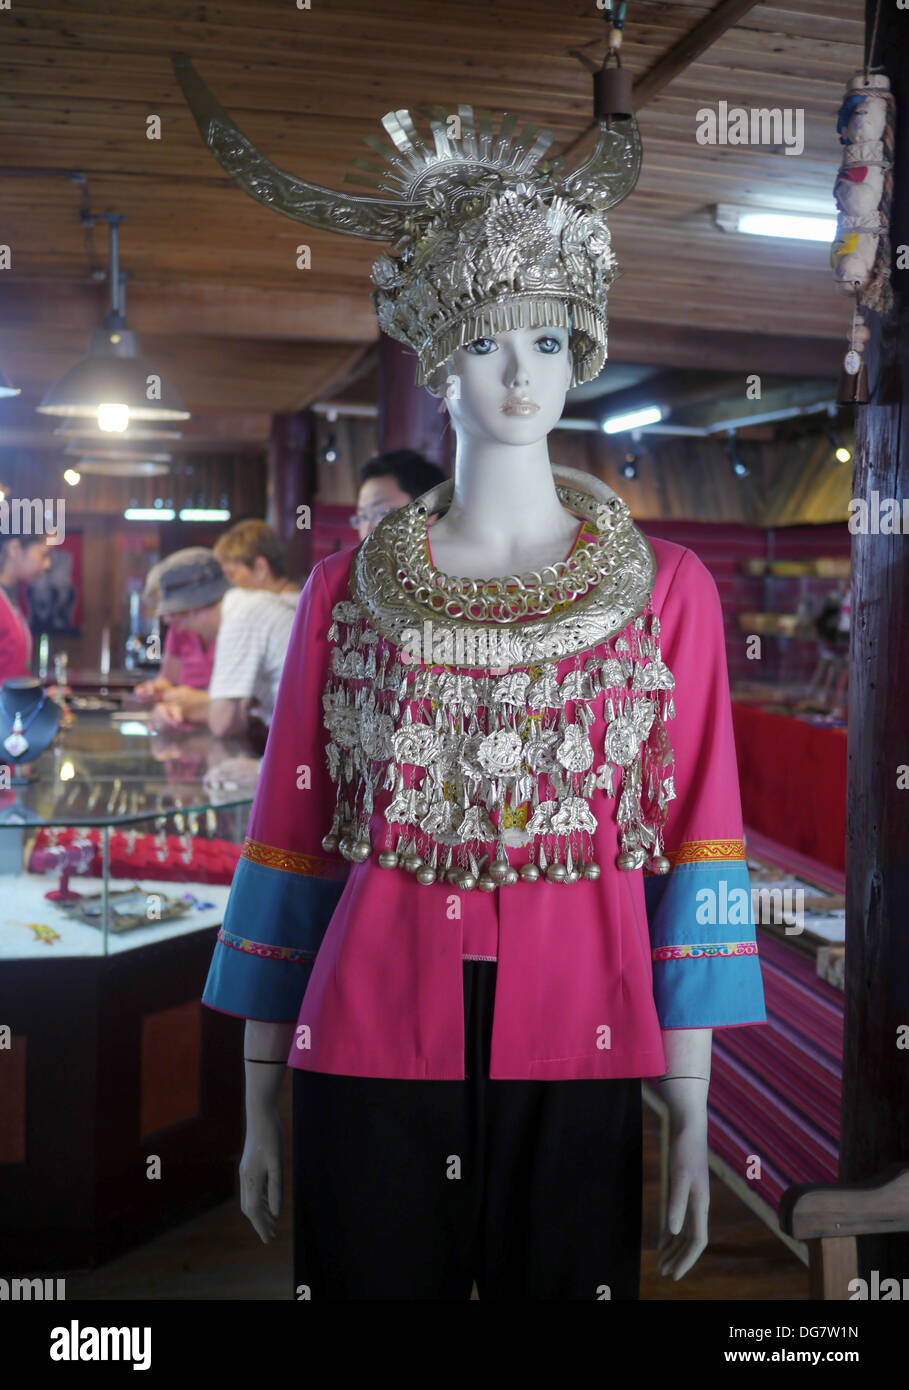 China, Guangxi Province, Guilin, manikin with traditional dress Stock Photo